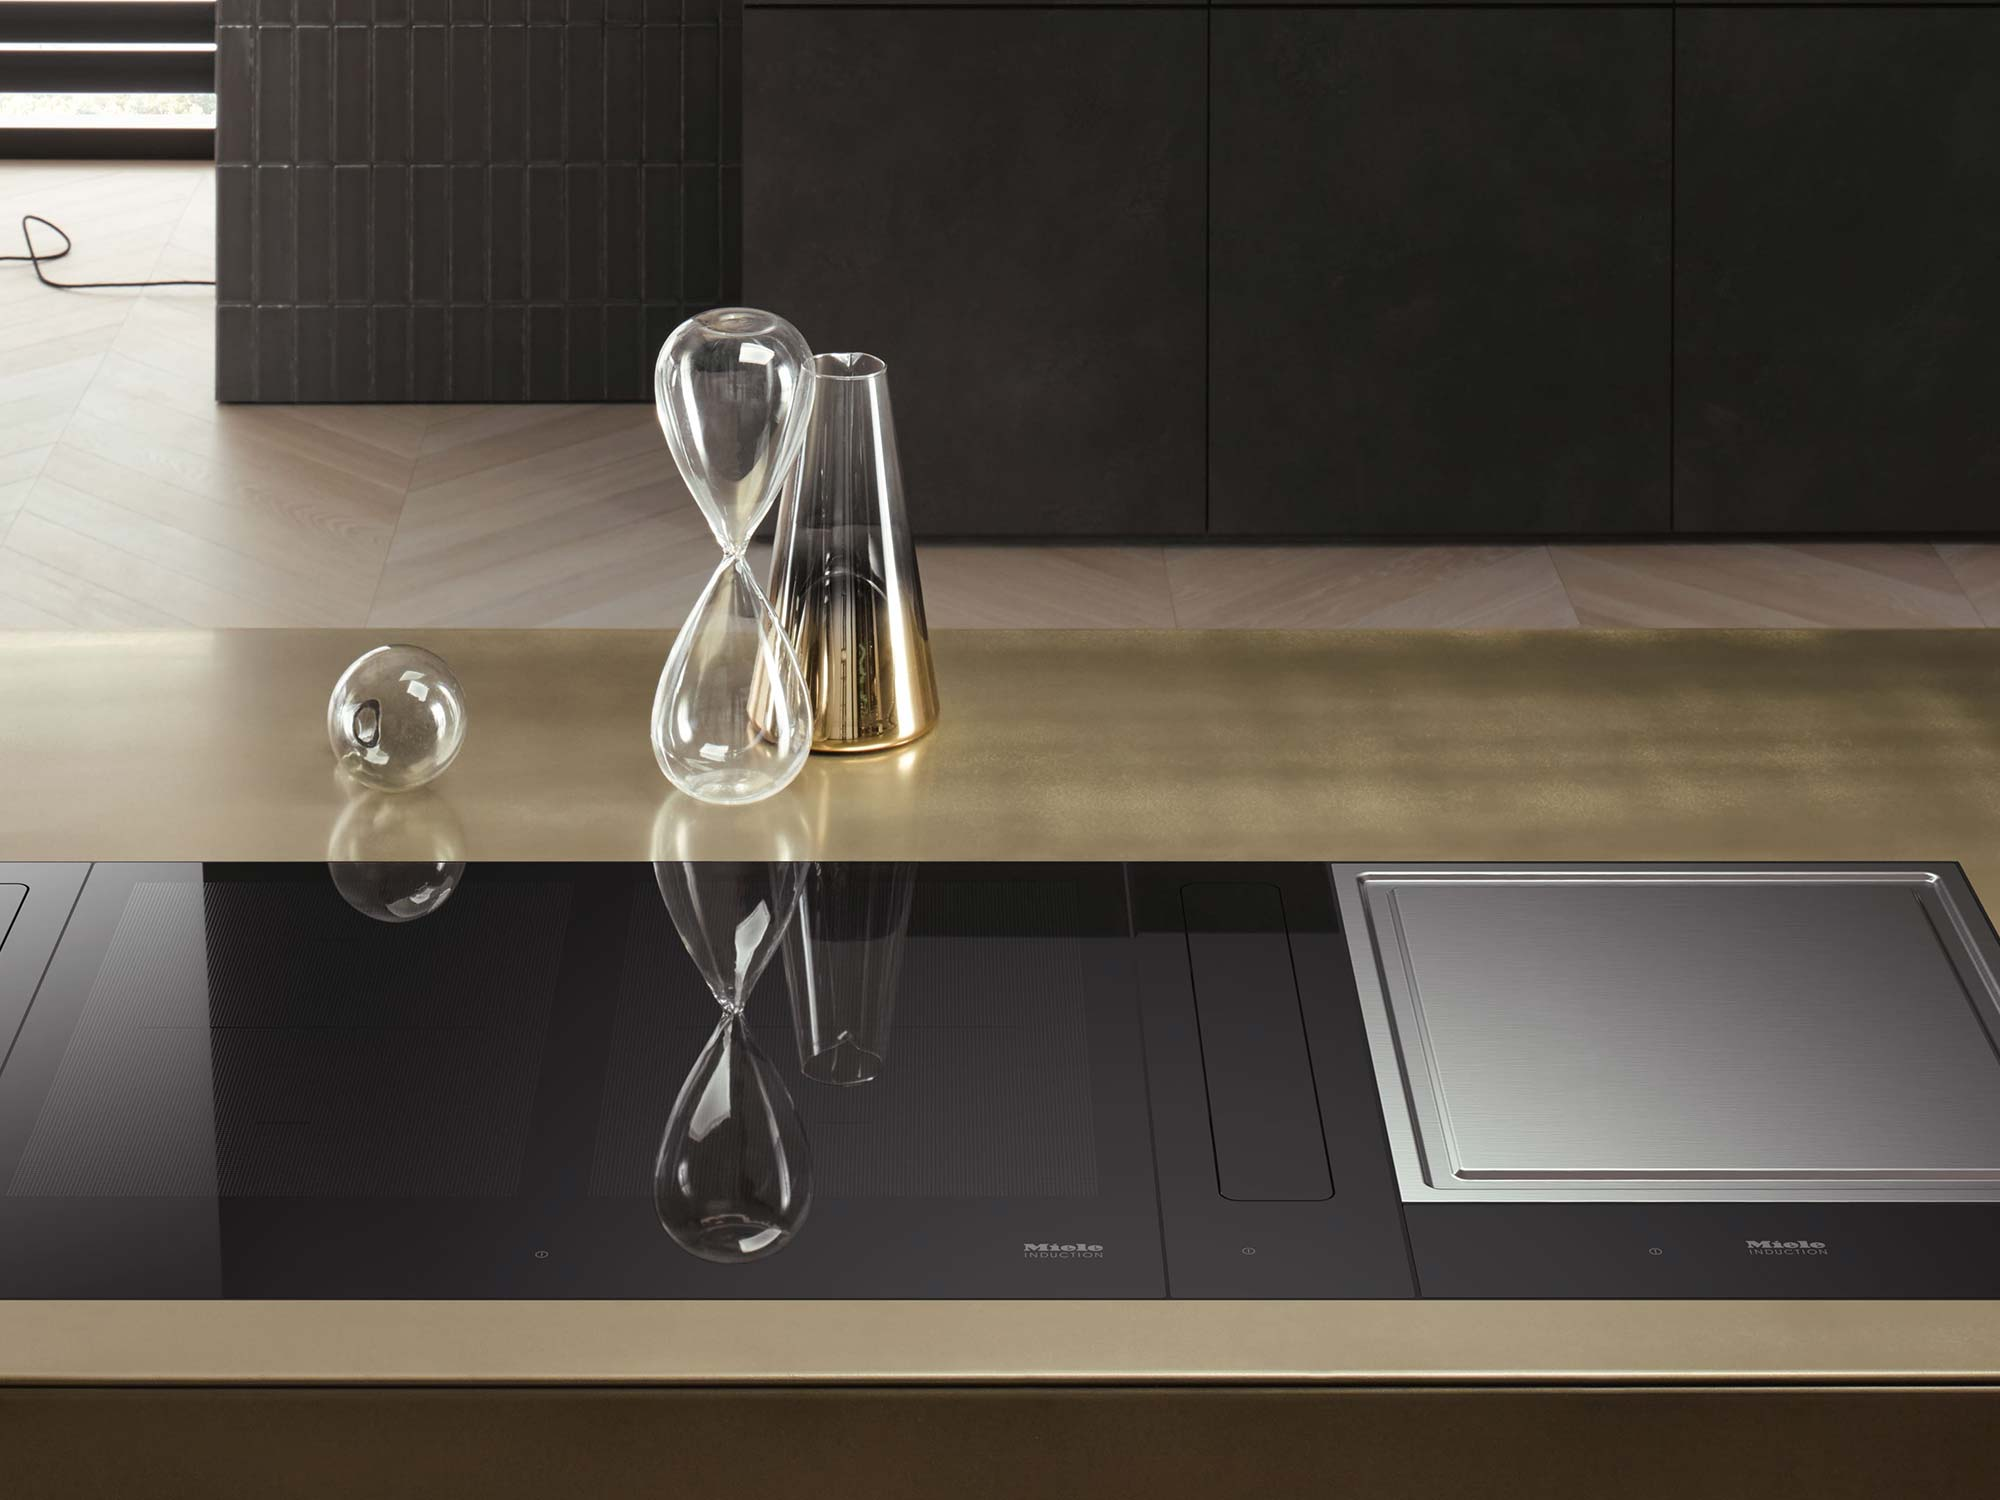 Miele cooker hob kitchen appliance